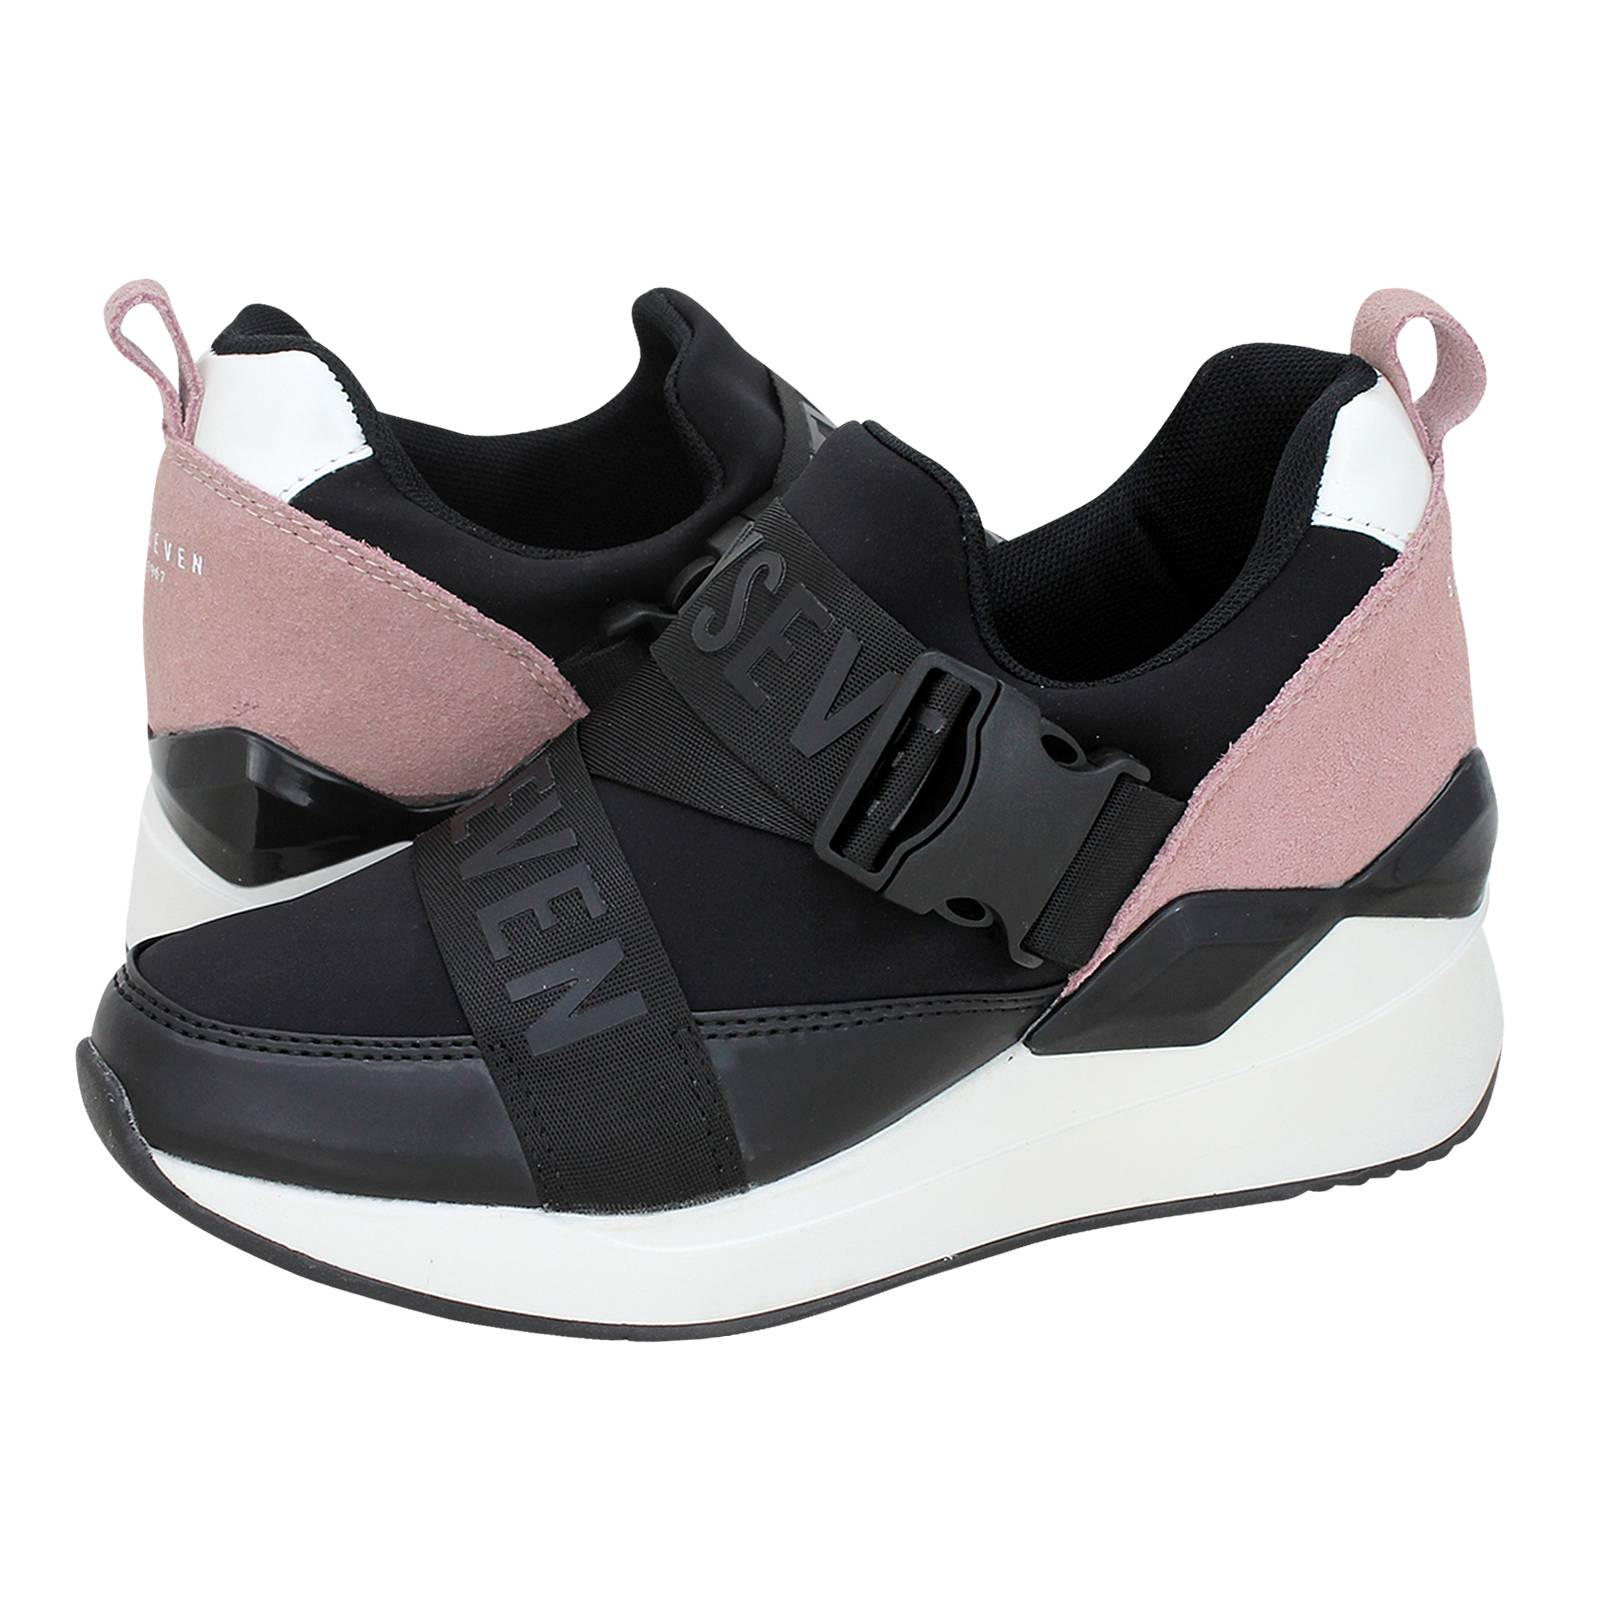 a9e4ec1e2f Carbonne - Sixty Seven Women's casual shoes made of fabric, suede ...